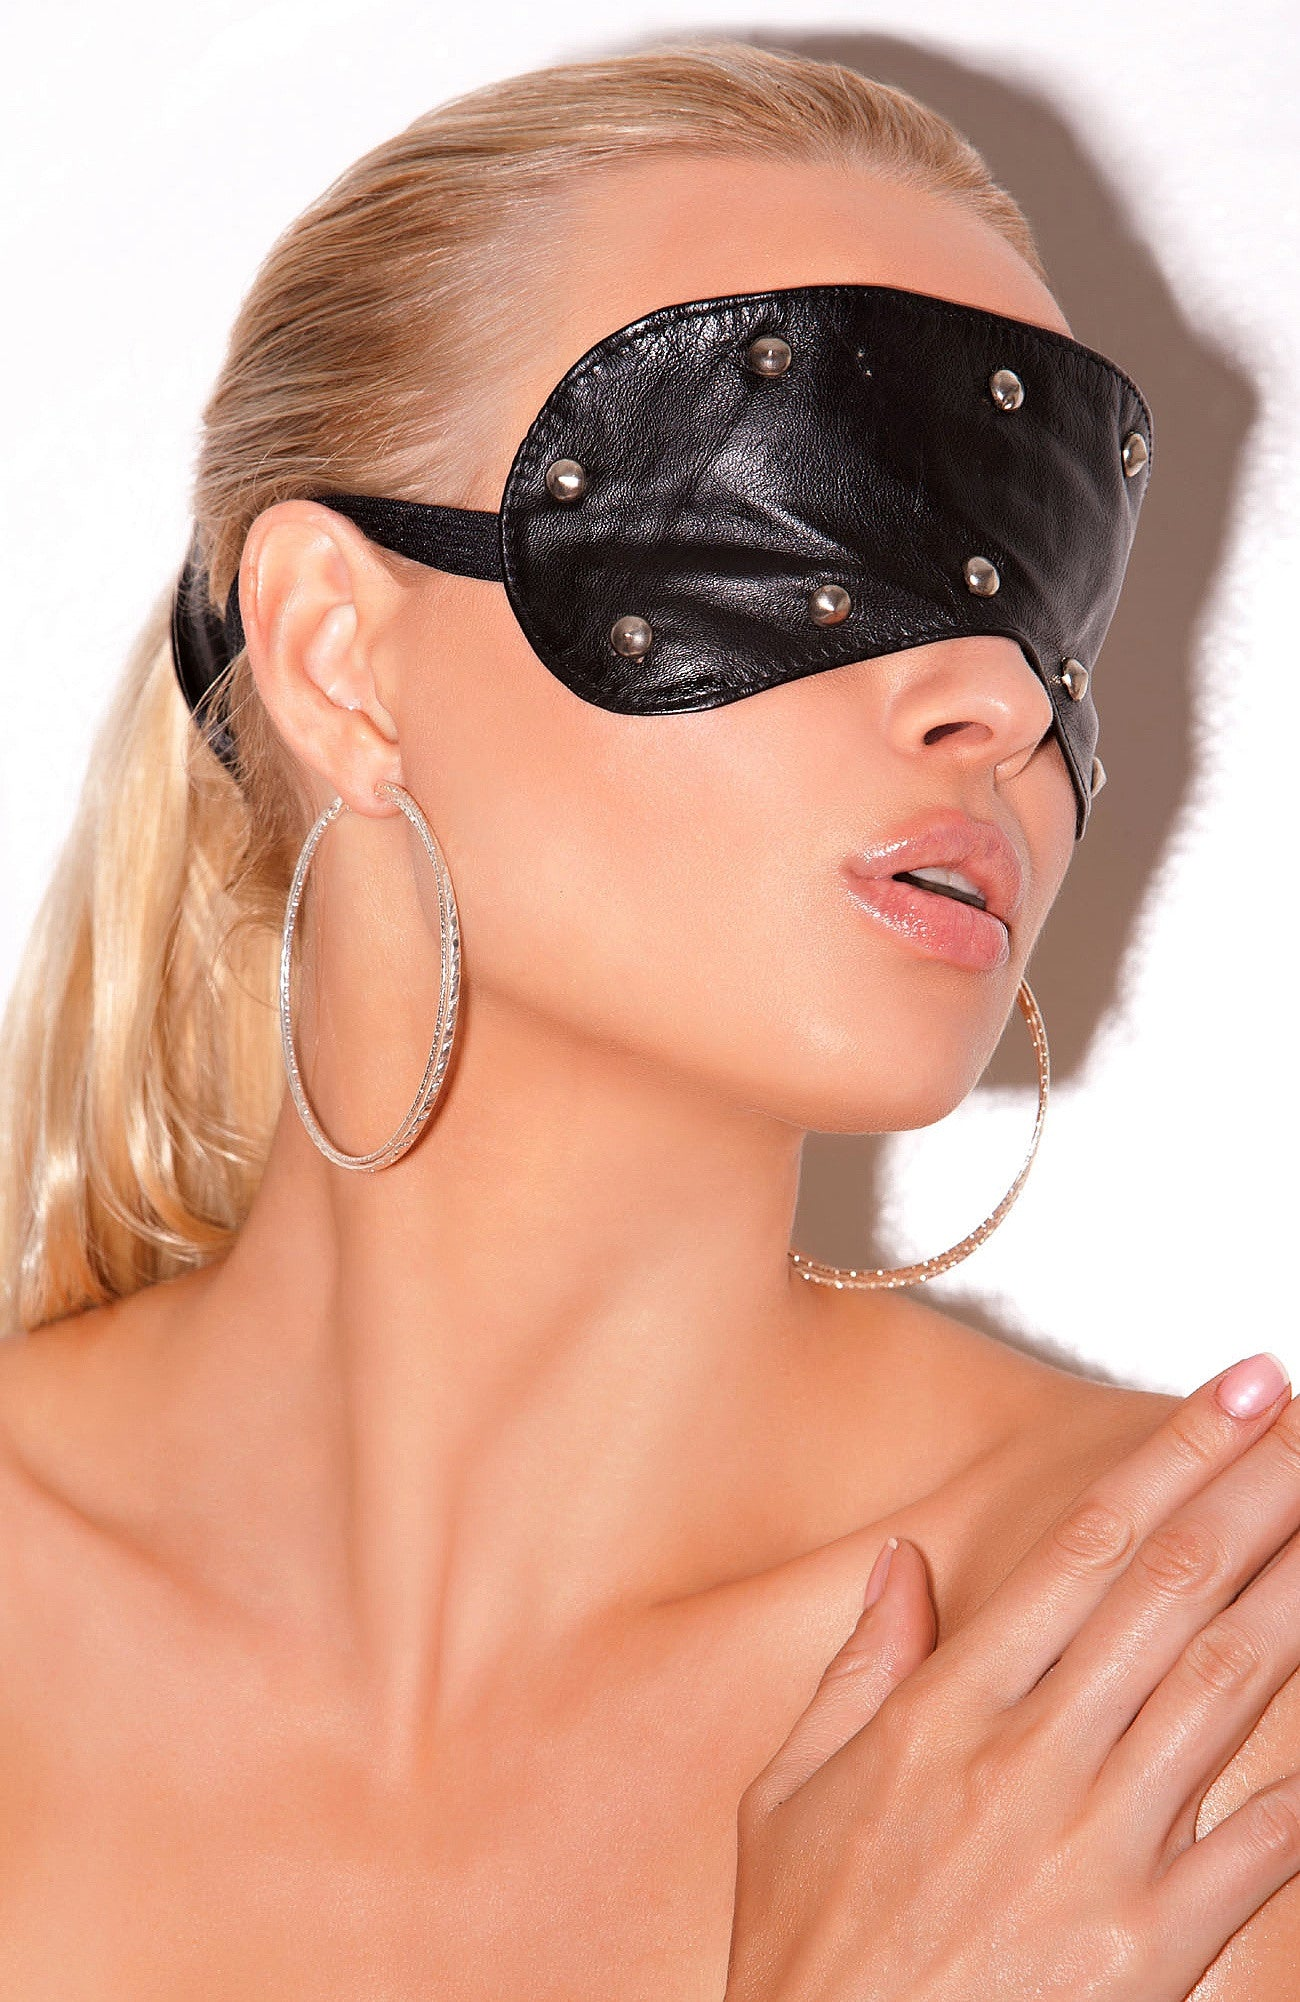 L9257 Leather blindfold with studs - Sexylingerieland